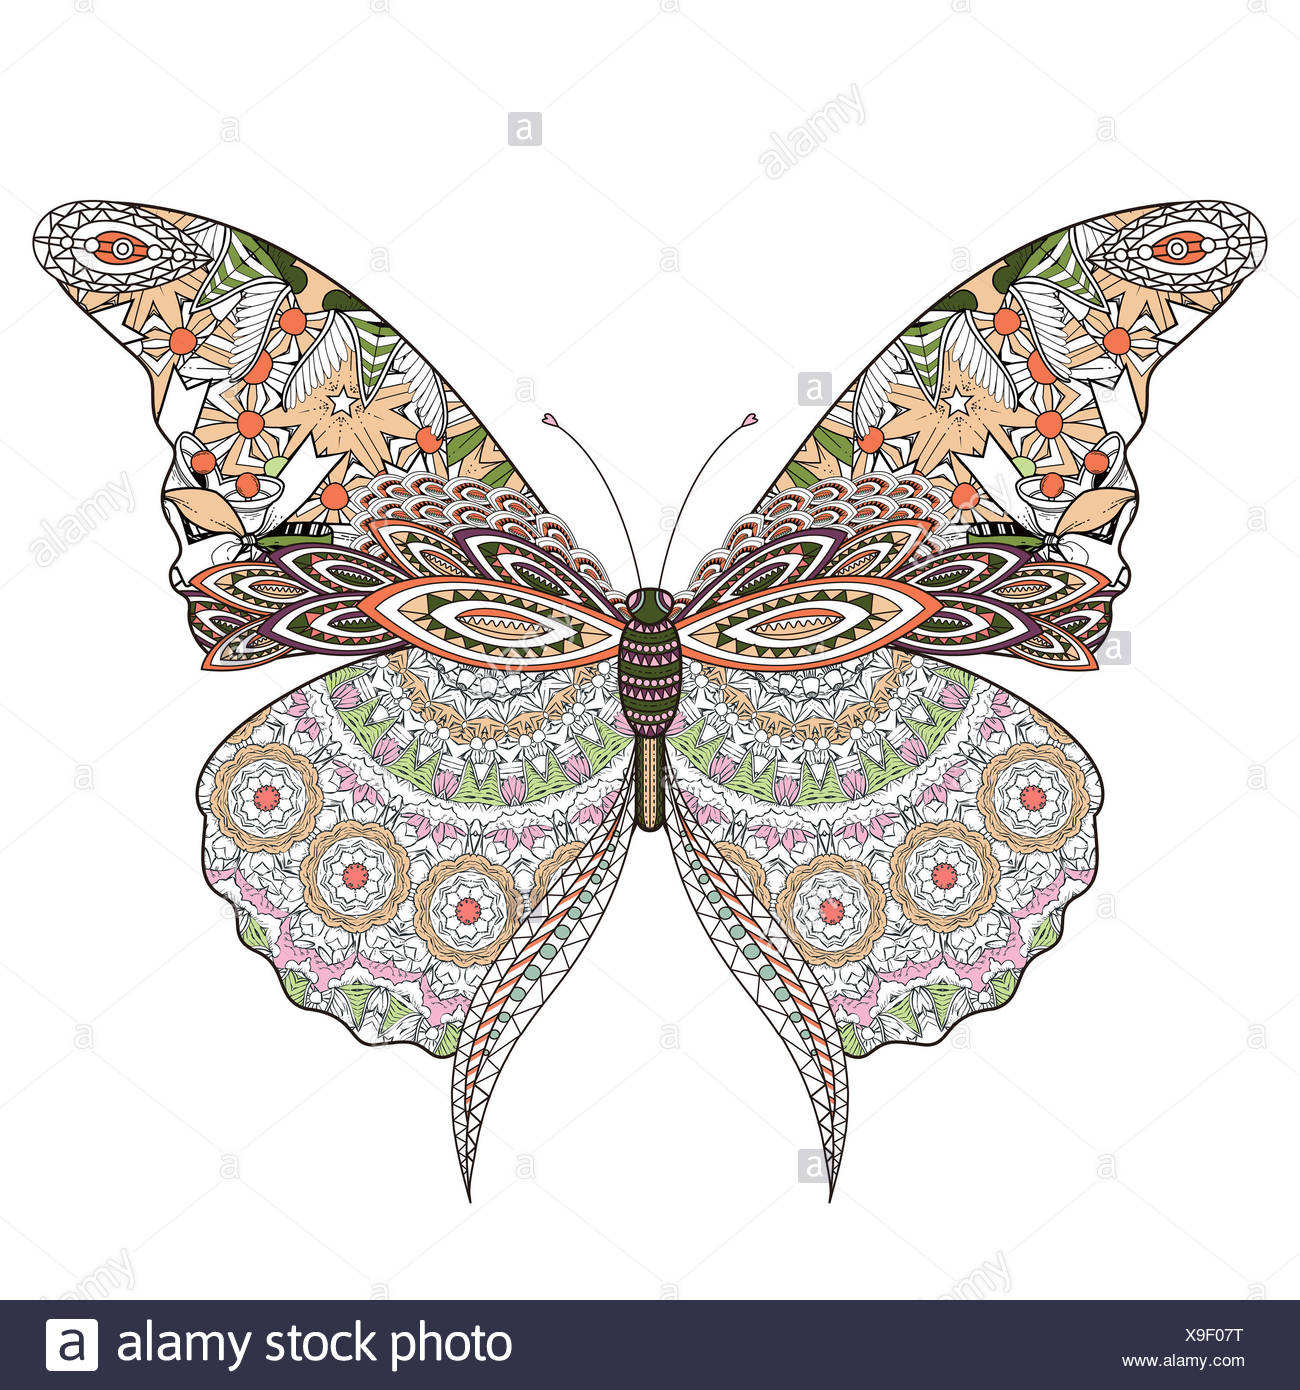 Flower Insect Doodle Art Stockfotos & Flower Insect Doodle Art ...